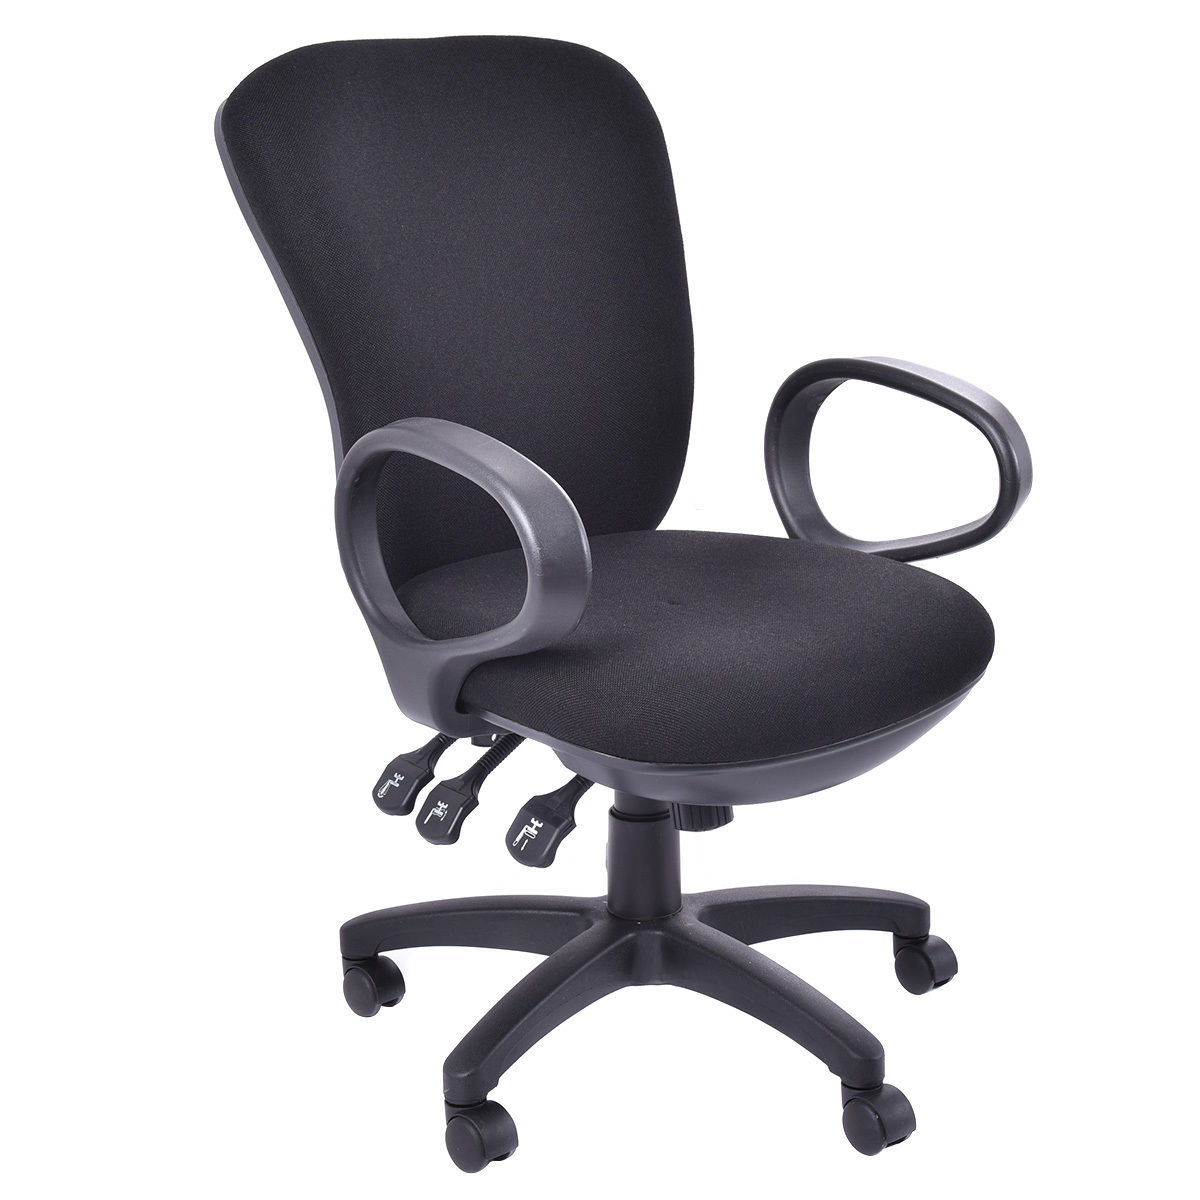 Giantex Mordern Ergonomic Mid-Back Gamign Chair Executive Computer Desk Task Office Chair Black Swivel furniture HW52597 диски литые dezent rb 7 0x16 5x108 d70 1 et48 polished